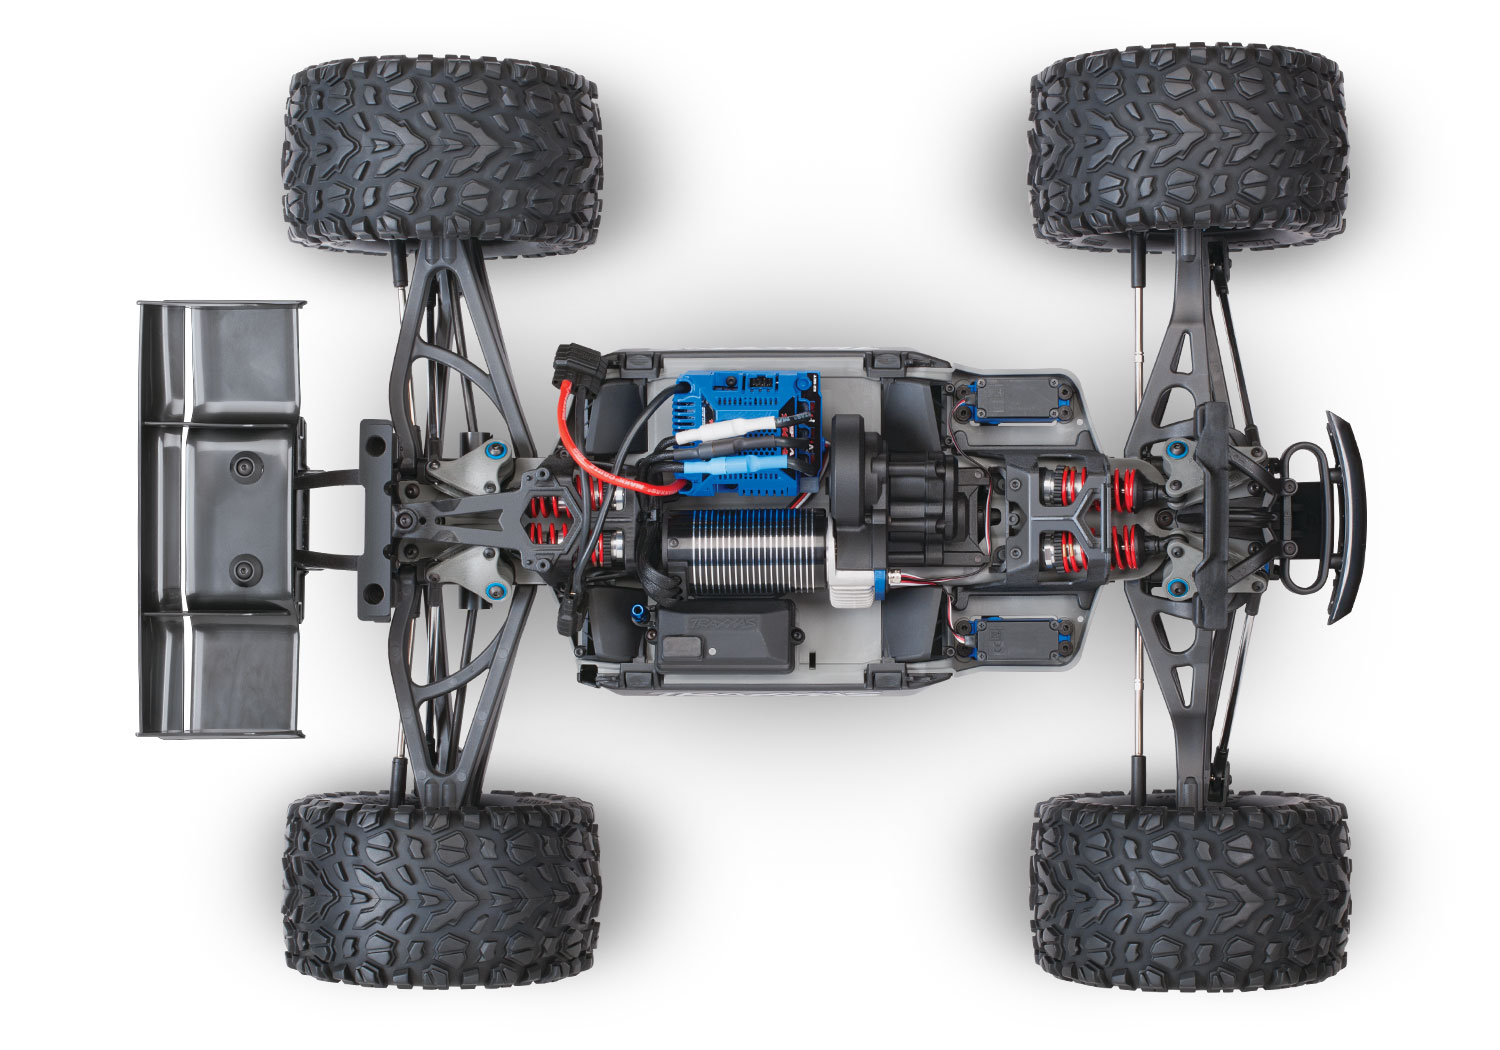 hight resolution of e revo chassis look from above